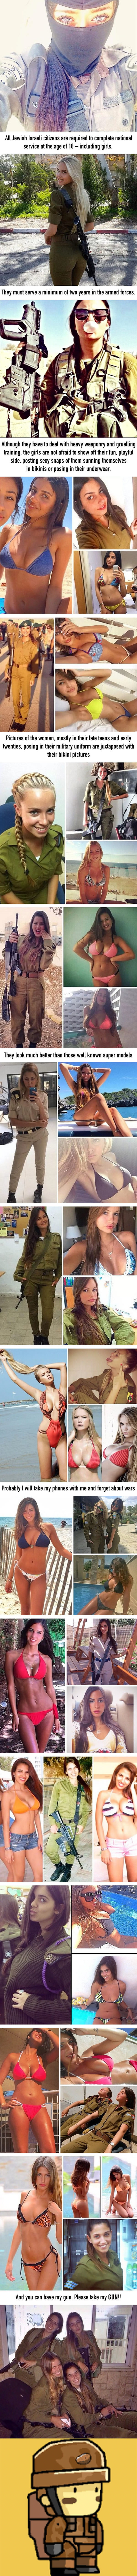 There Is A Viral Instagram Account Dedicates To Hot Israeli Army Girls